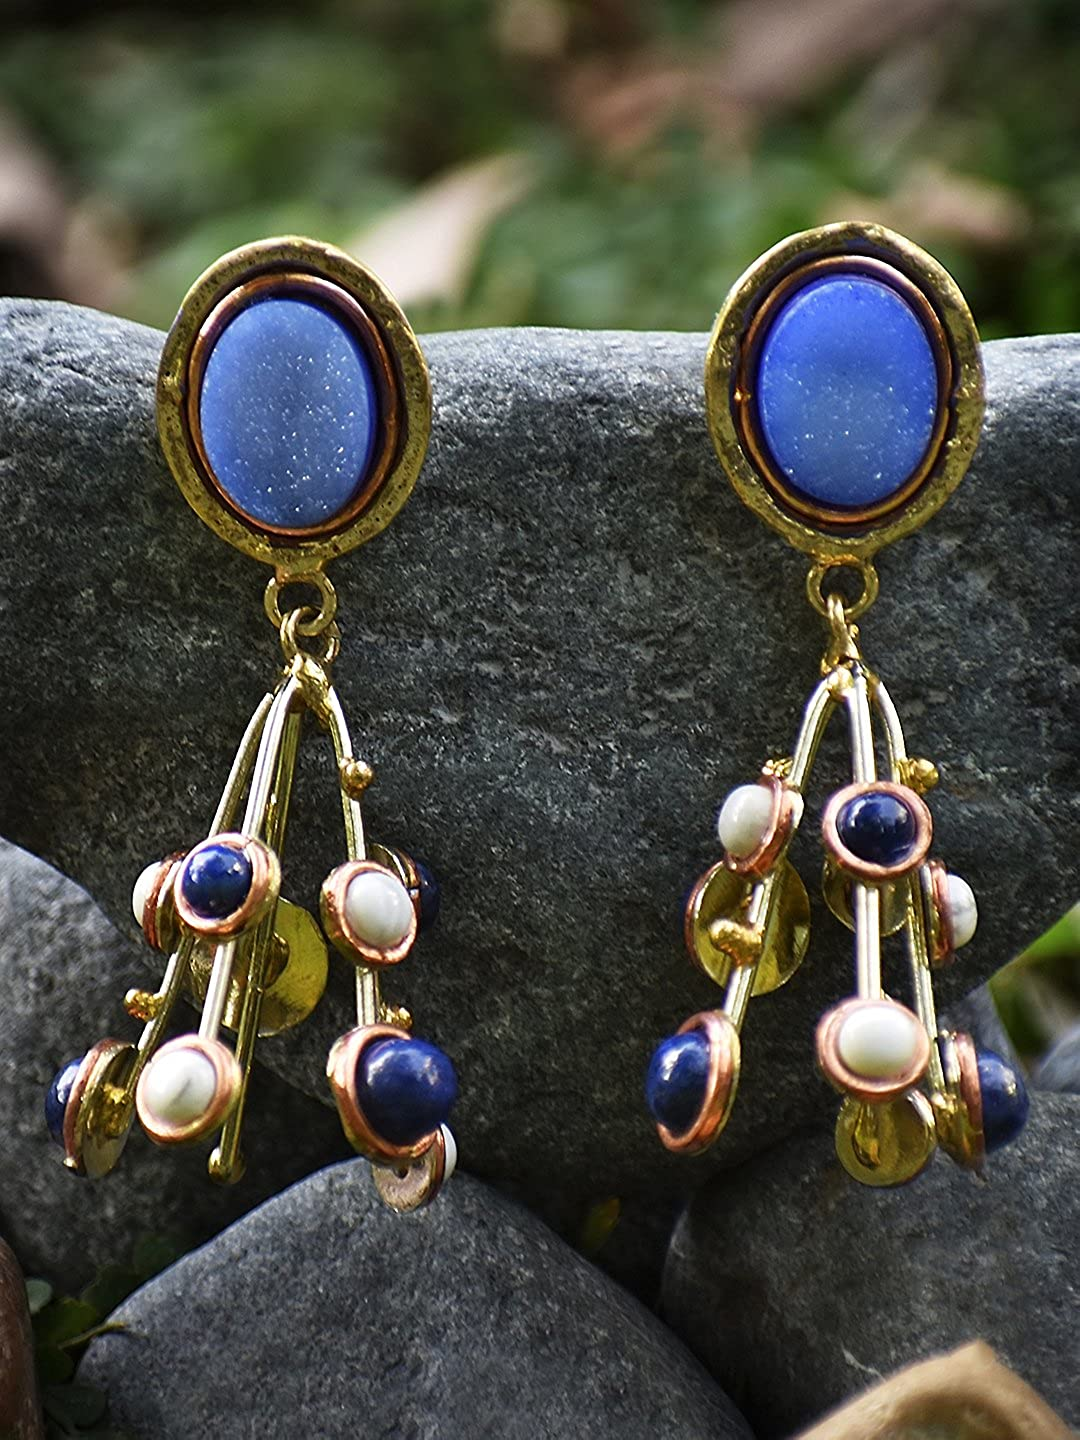 Zerokaata/ Fashion Jewellery Blue Druzy Lapis Lazuli and Howlite Handmade Jewellery Earrings For Women /& Girls